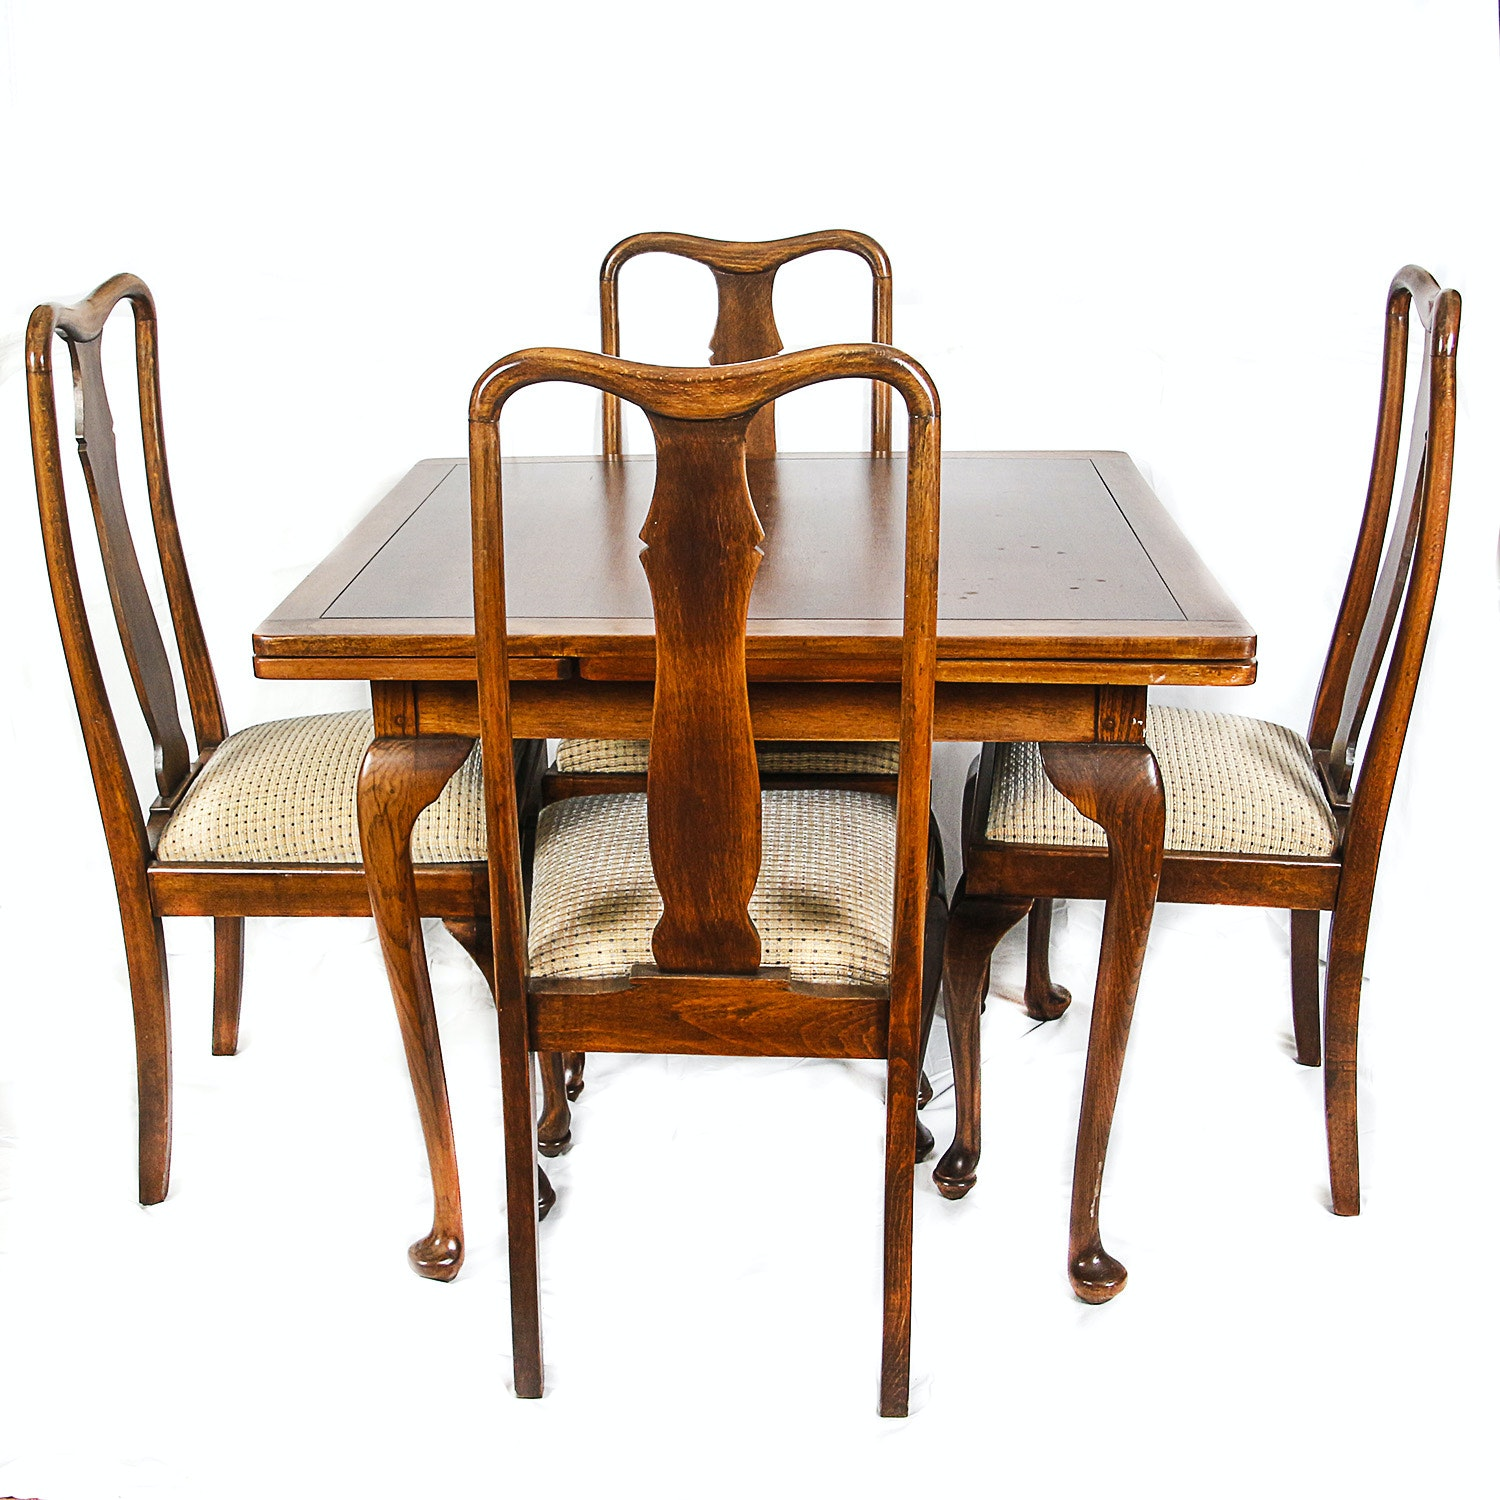 Queen Anne Style Extendable Table with Side Chairs